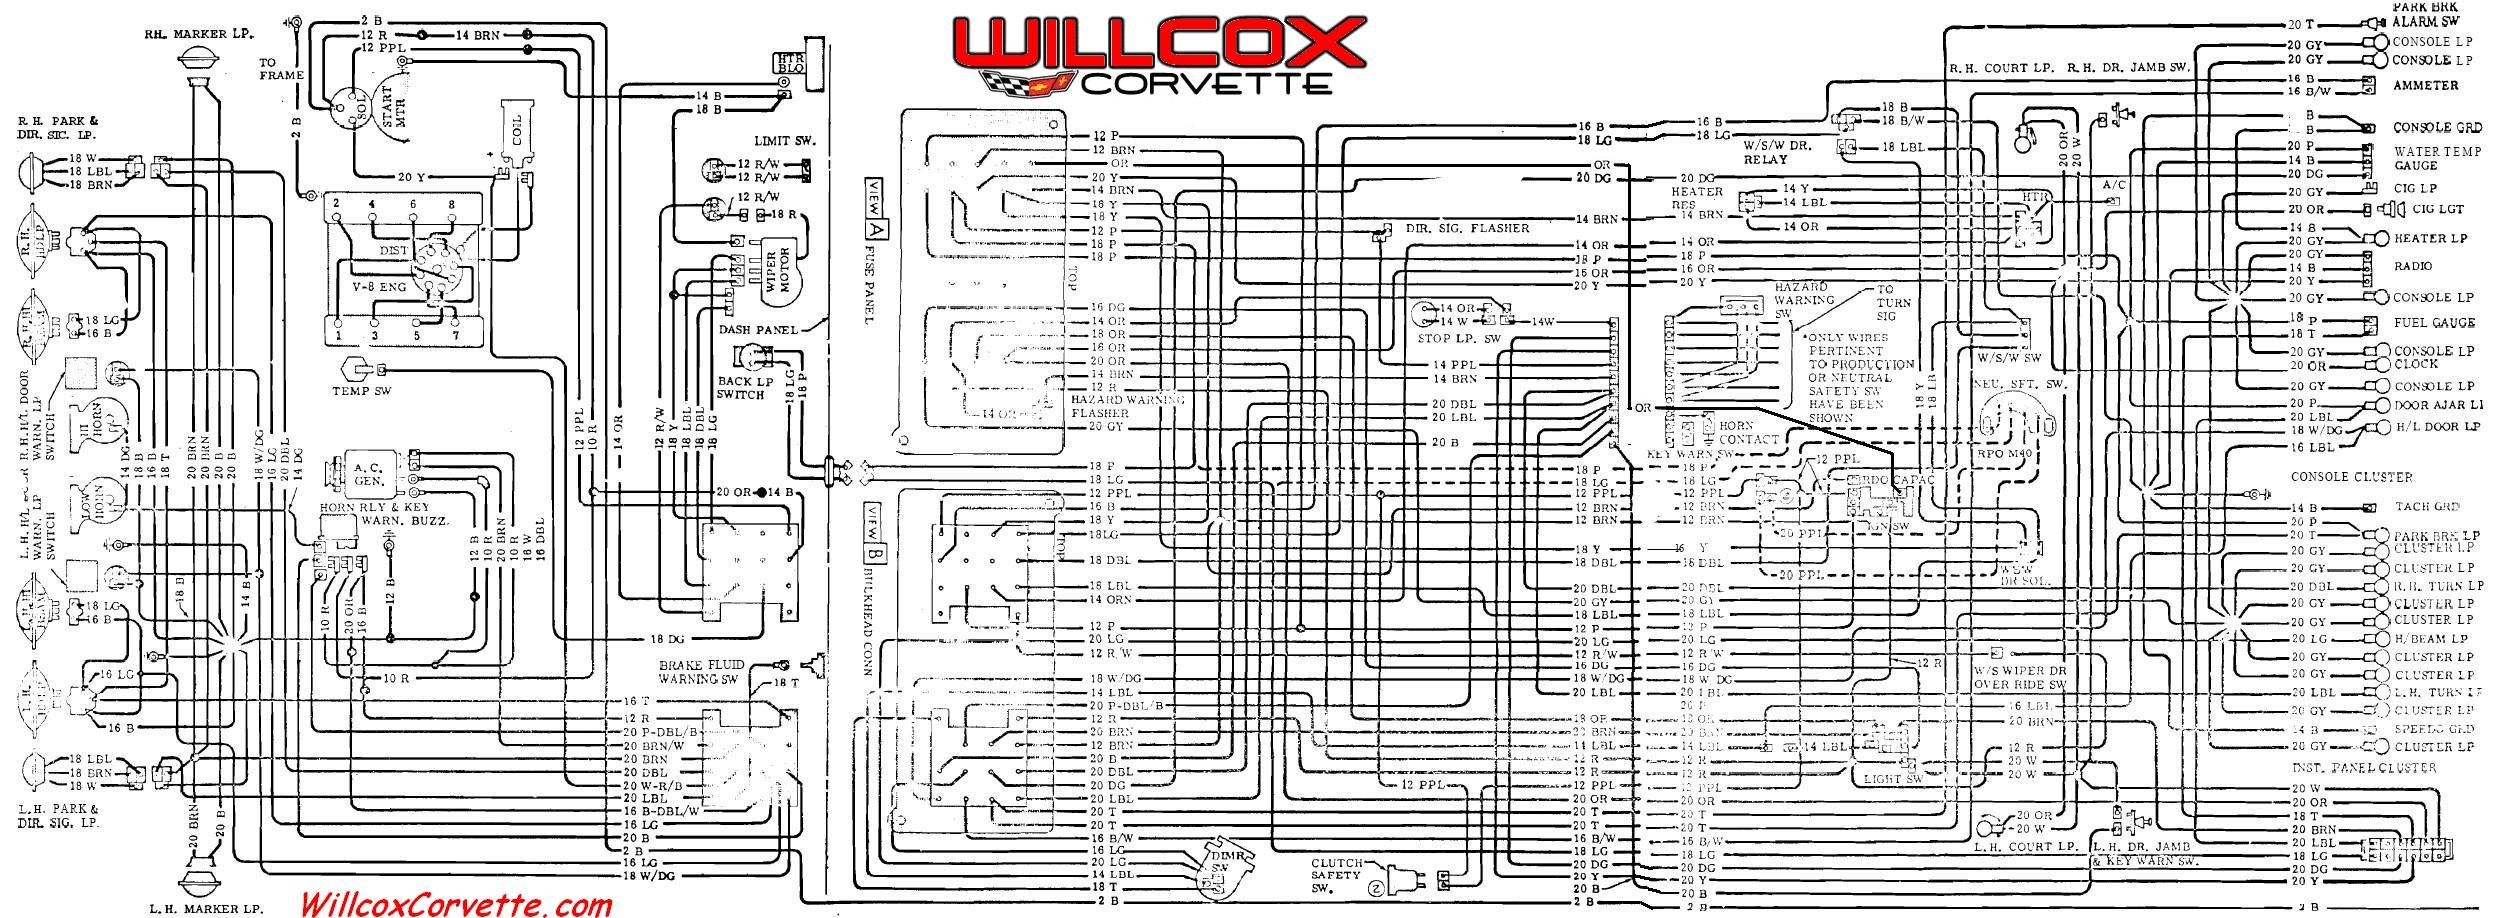 small resolution of citroen xm v6 wiring diagram wiring diagram datasourcewrg 5324 citroen xantia wiring diagram c3 wiring